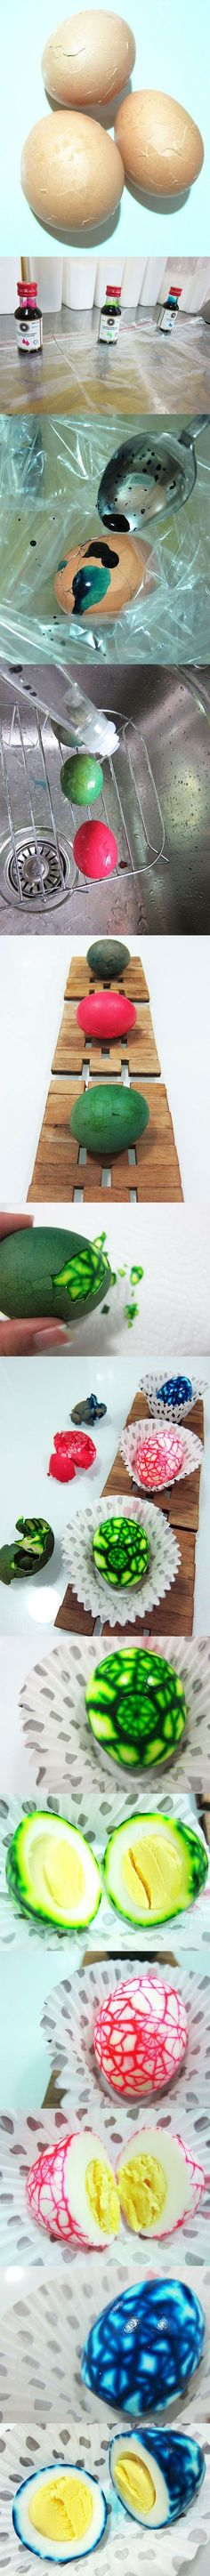 Making marbled #Easter eggs is not hard as it sound. Step 1: Get some boiled eggs, make it cool; step 2: use spoon tap egg shells, like the picture shows; step 3: get some food coloring and drop it on the egg, don't drop too much; step 4: patiently wait 1 or 2 hours. You will get some beautiful marbled Easter eggs for your family.